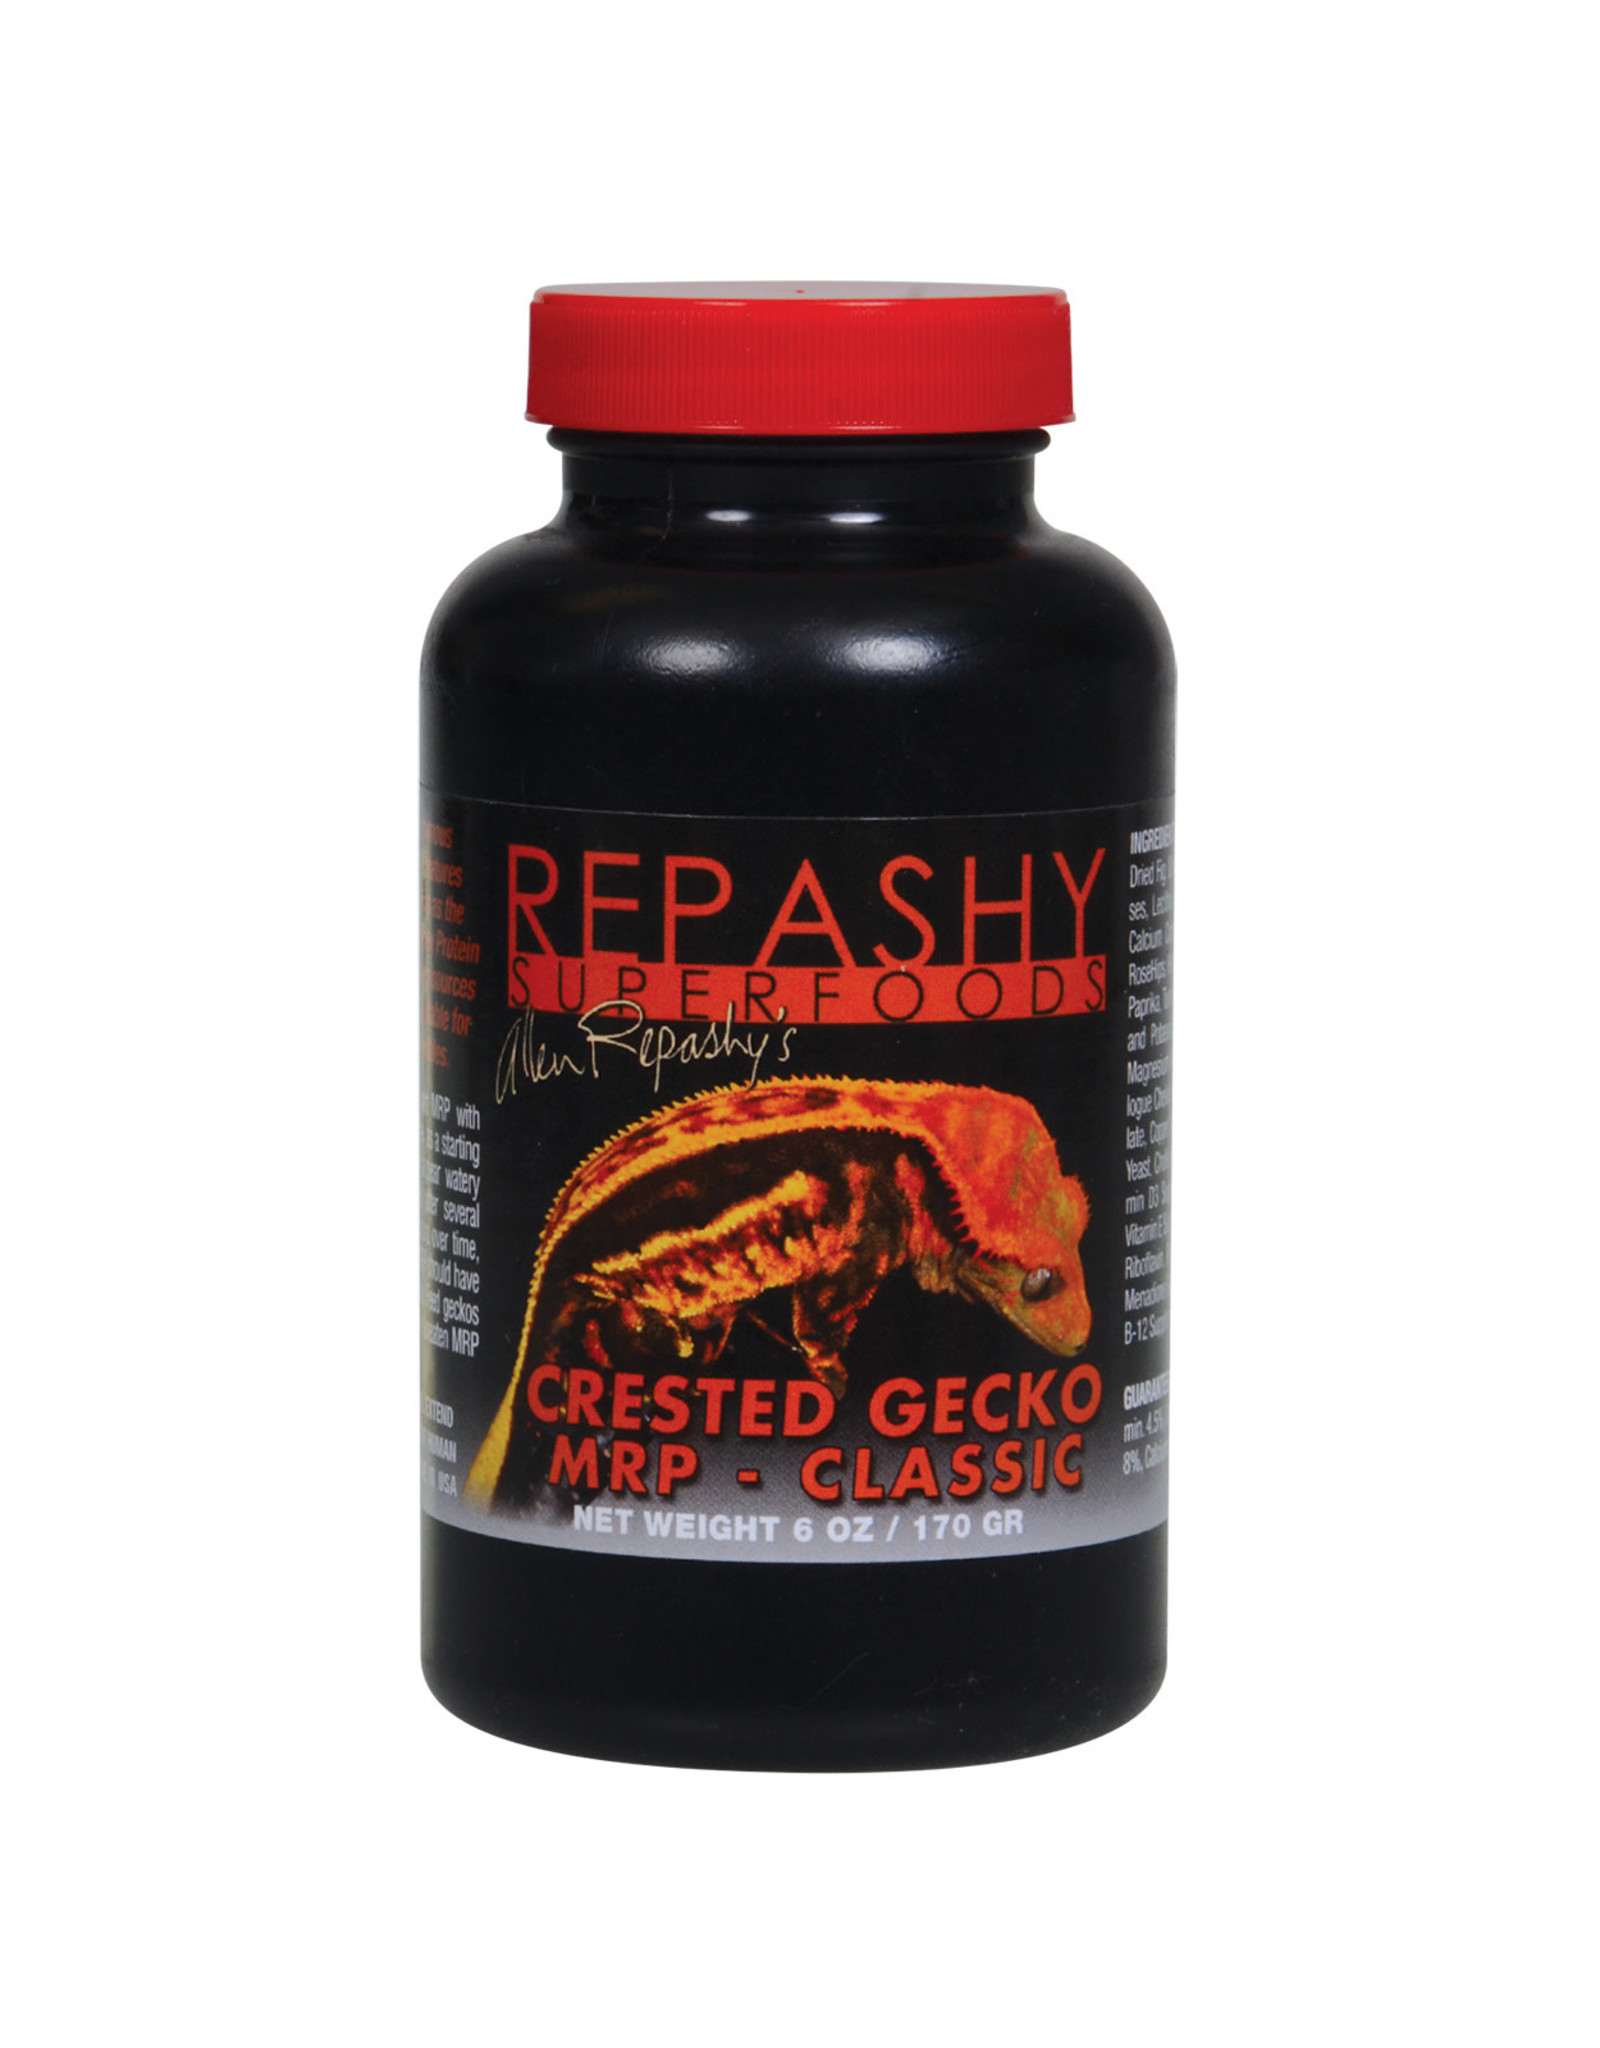 Repashy Repashy Crested Gecko MRP Classic Diet - 6 oz